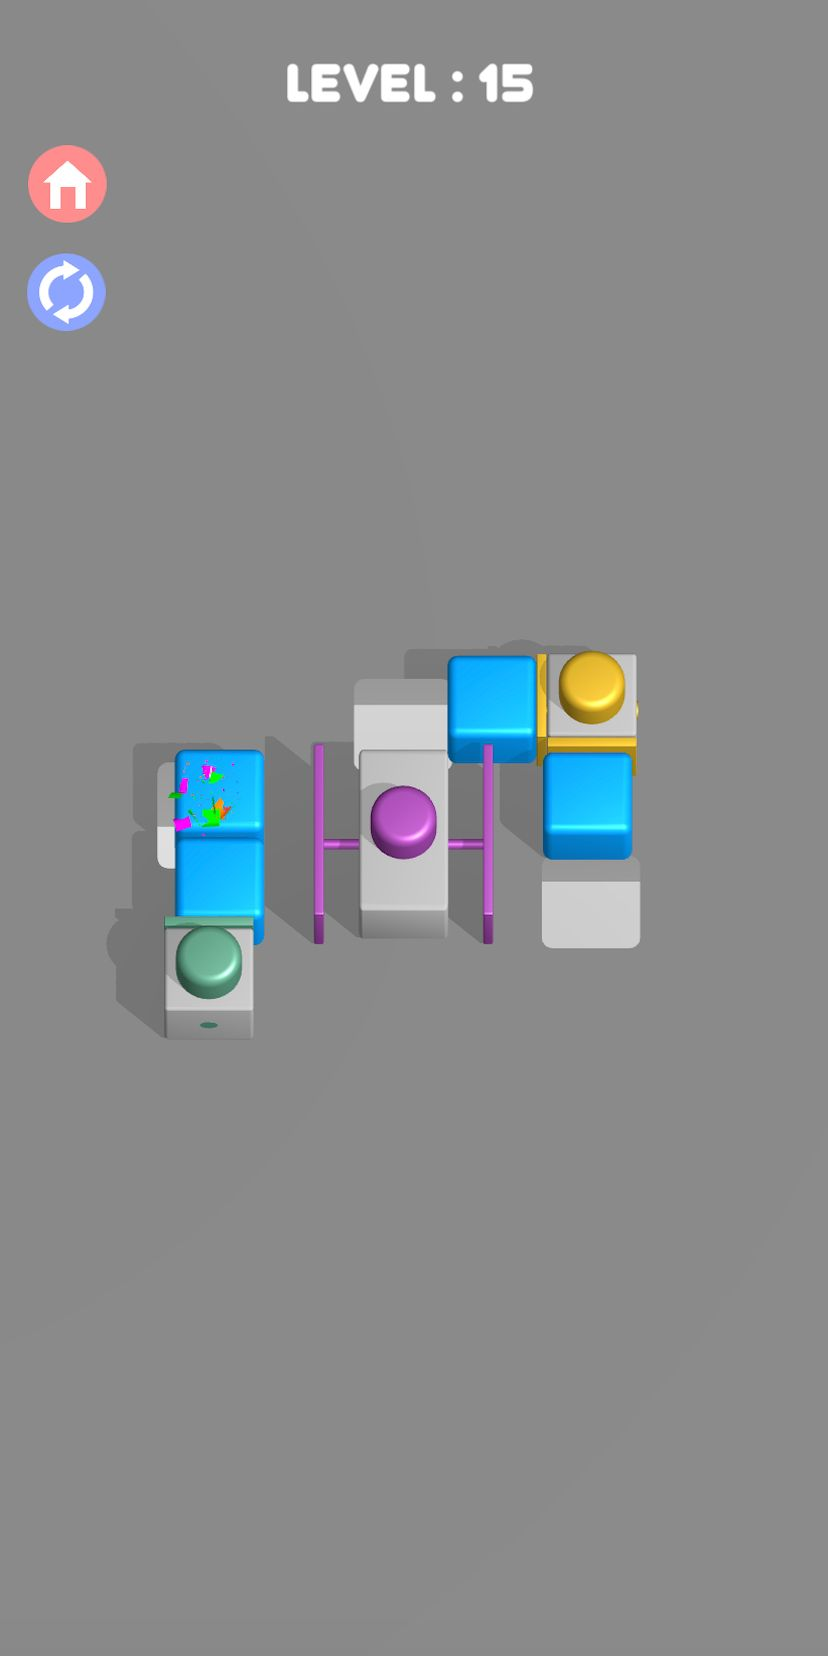 Push them all 3D - Smart block puzzle game captura de tela 1